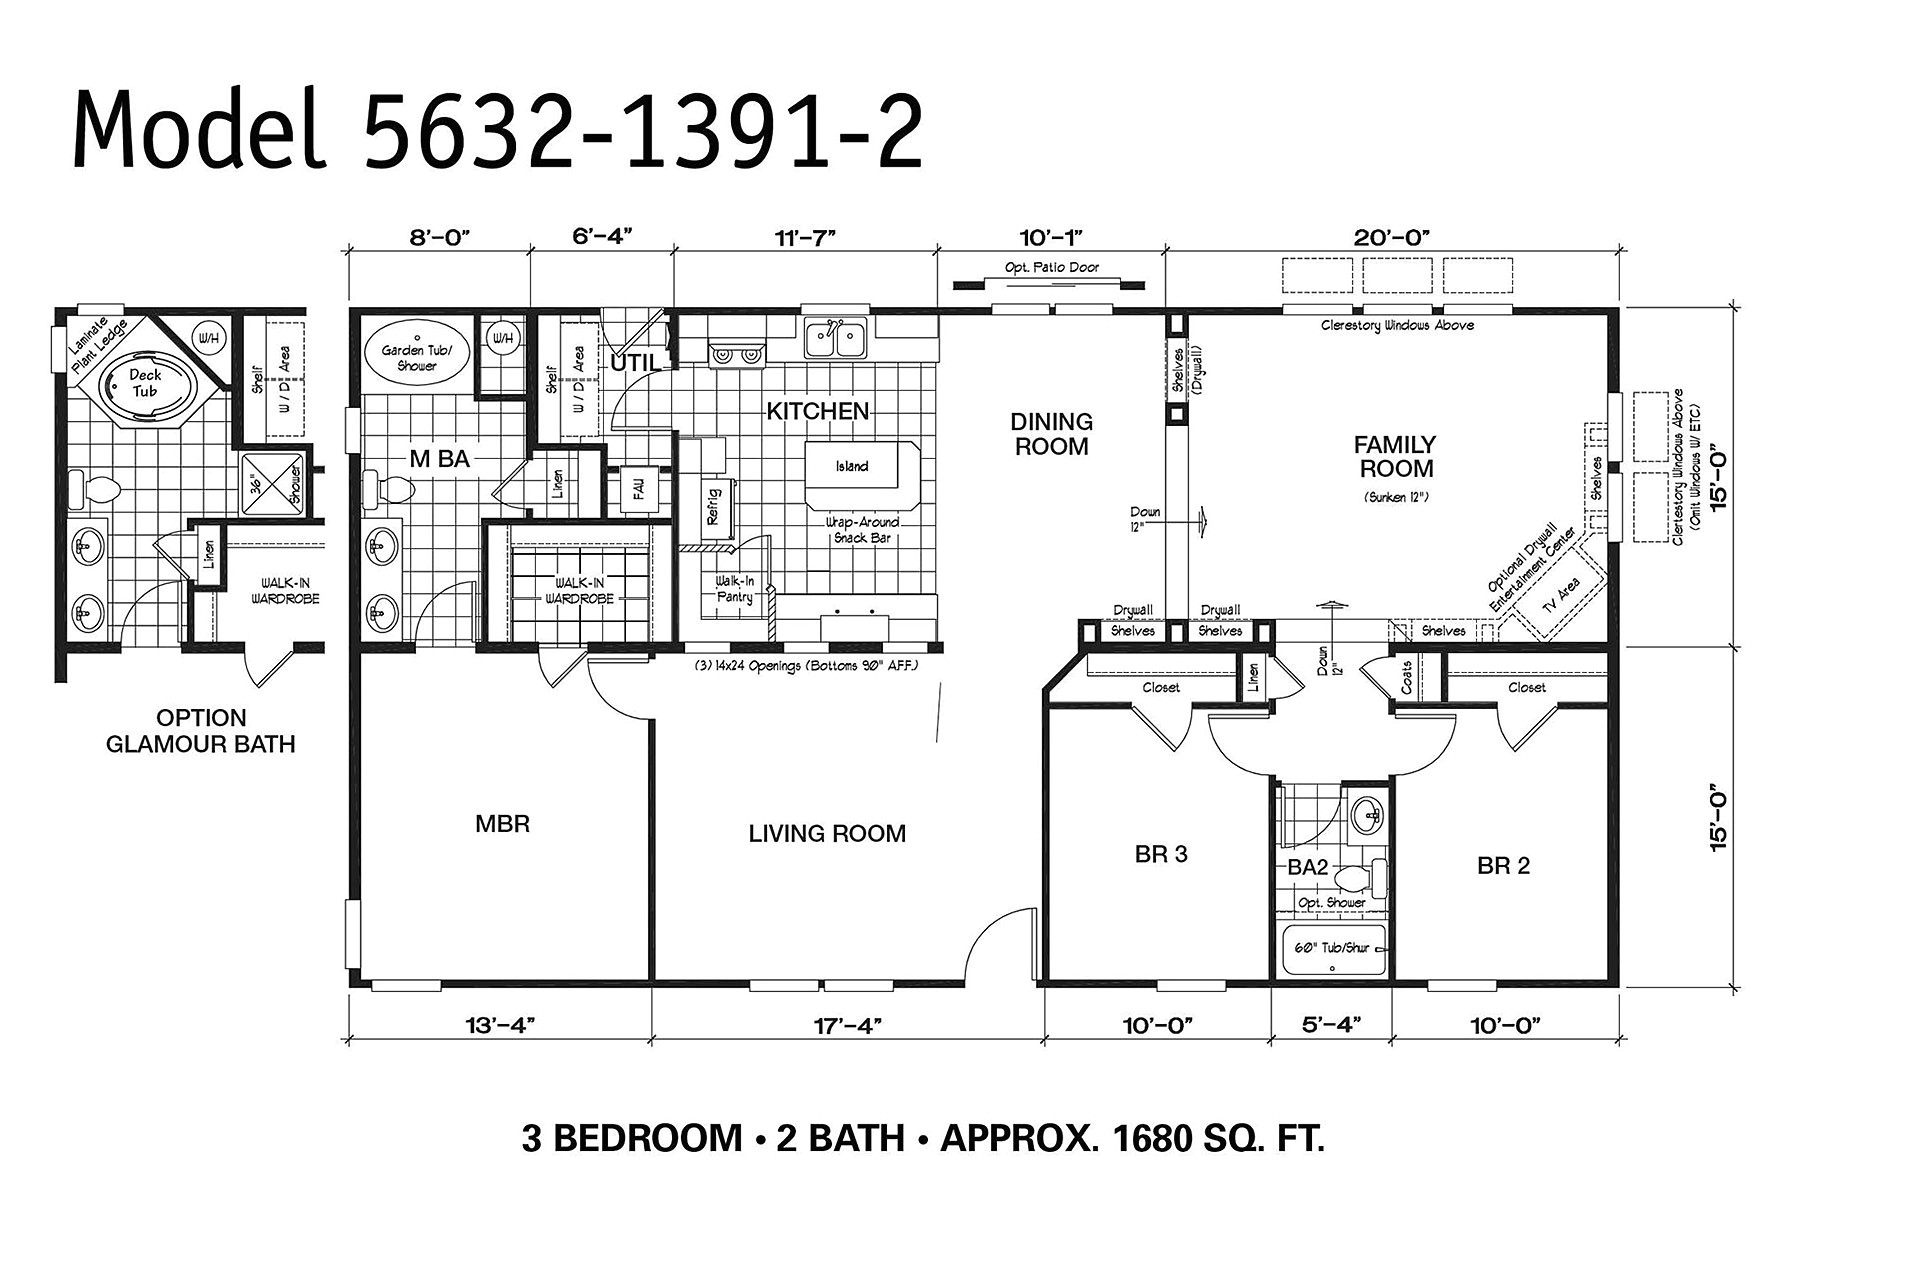 1997 oakwood mobile home floor plan